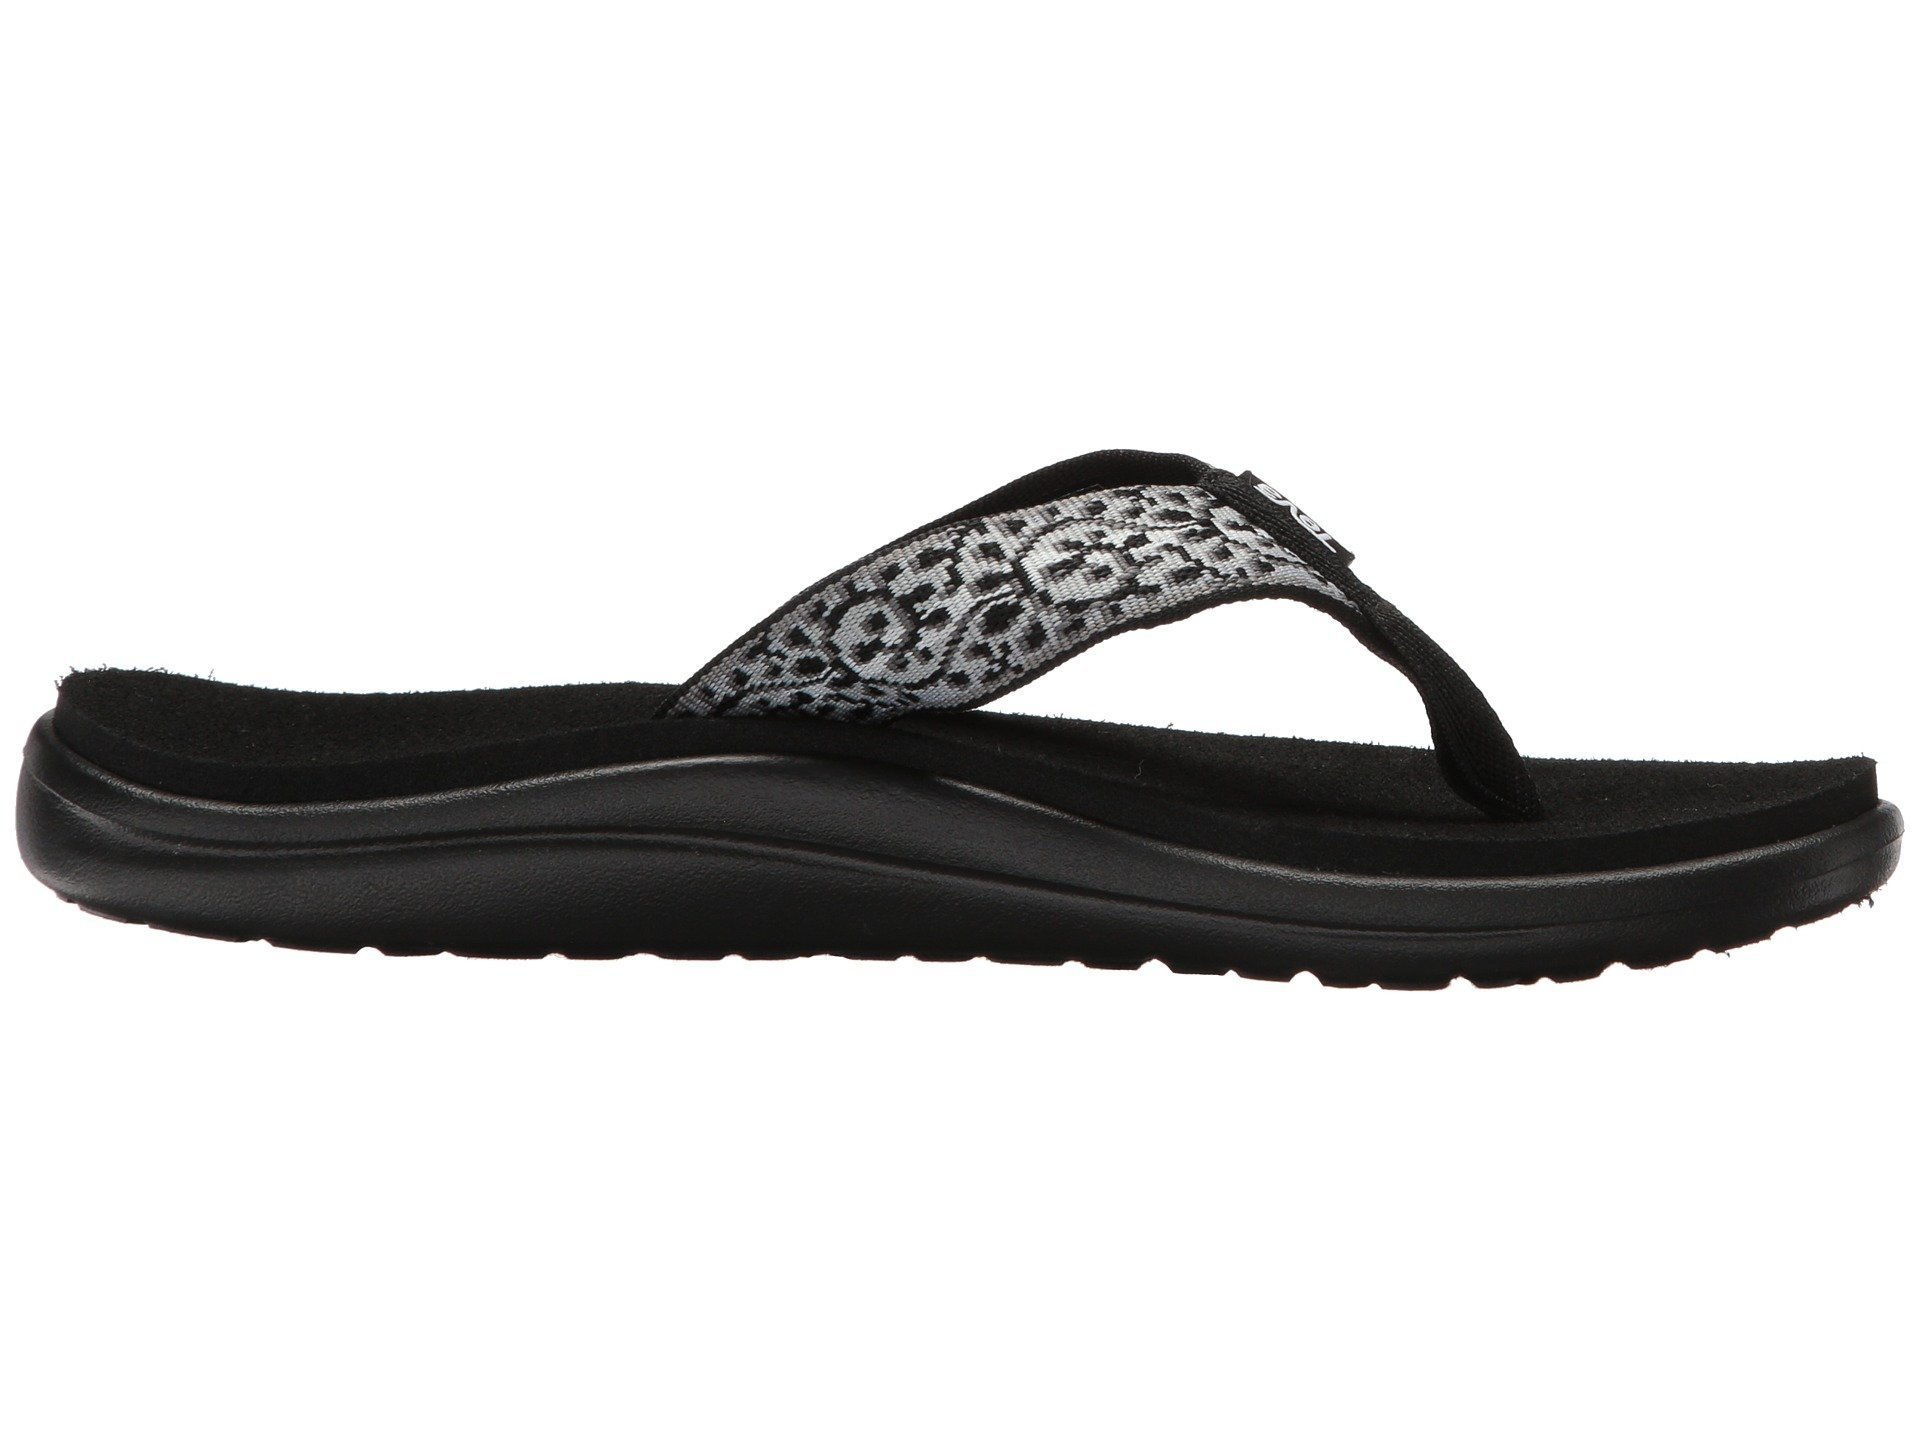 Teva Voya Flip Flop Women's Hiking 7 Companera Black-White by Teva